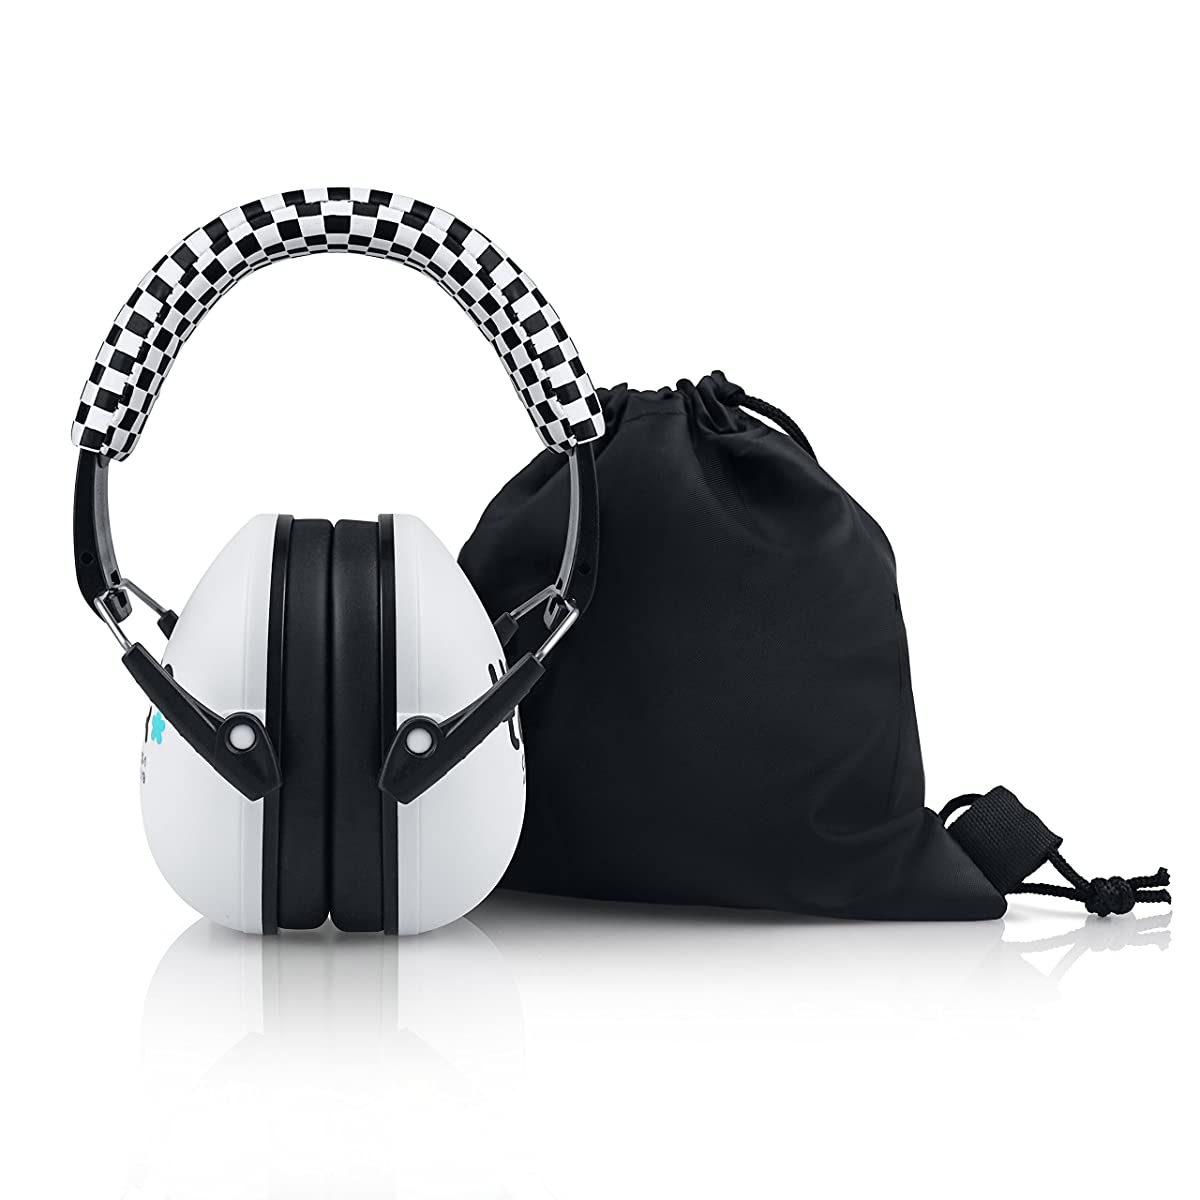 HearTek Kids Earmuffs Hearing Protection with Travel Bag- Junior Ear Defenders For Children, Padded Baby Ear Protection, Infants, Small Adults, Women - Adjustable Protector Noise Reduction Ear Muffs